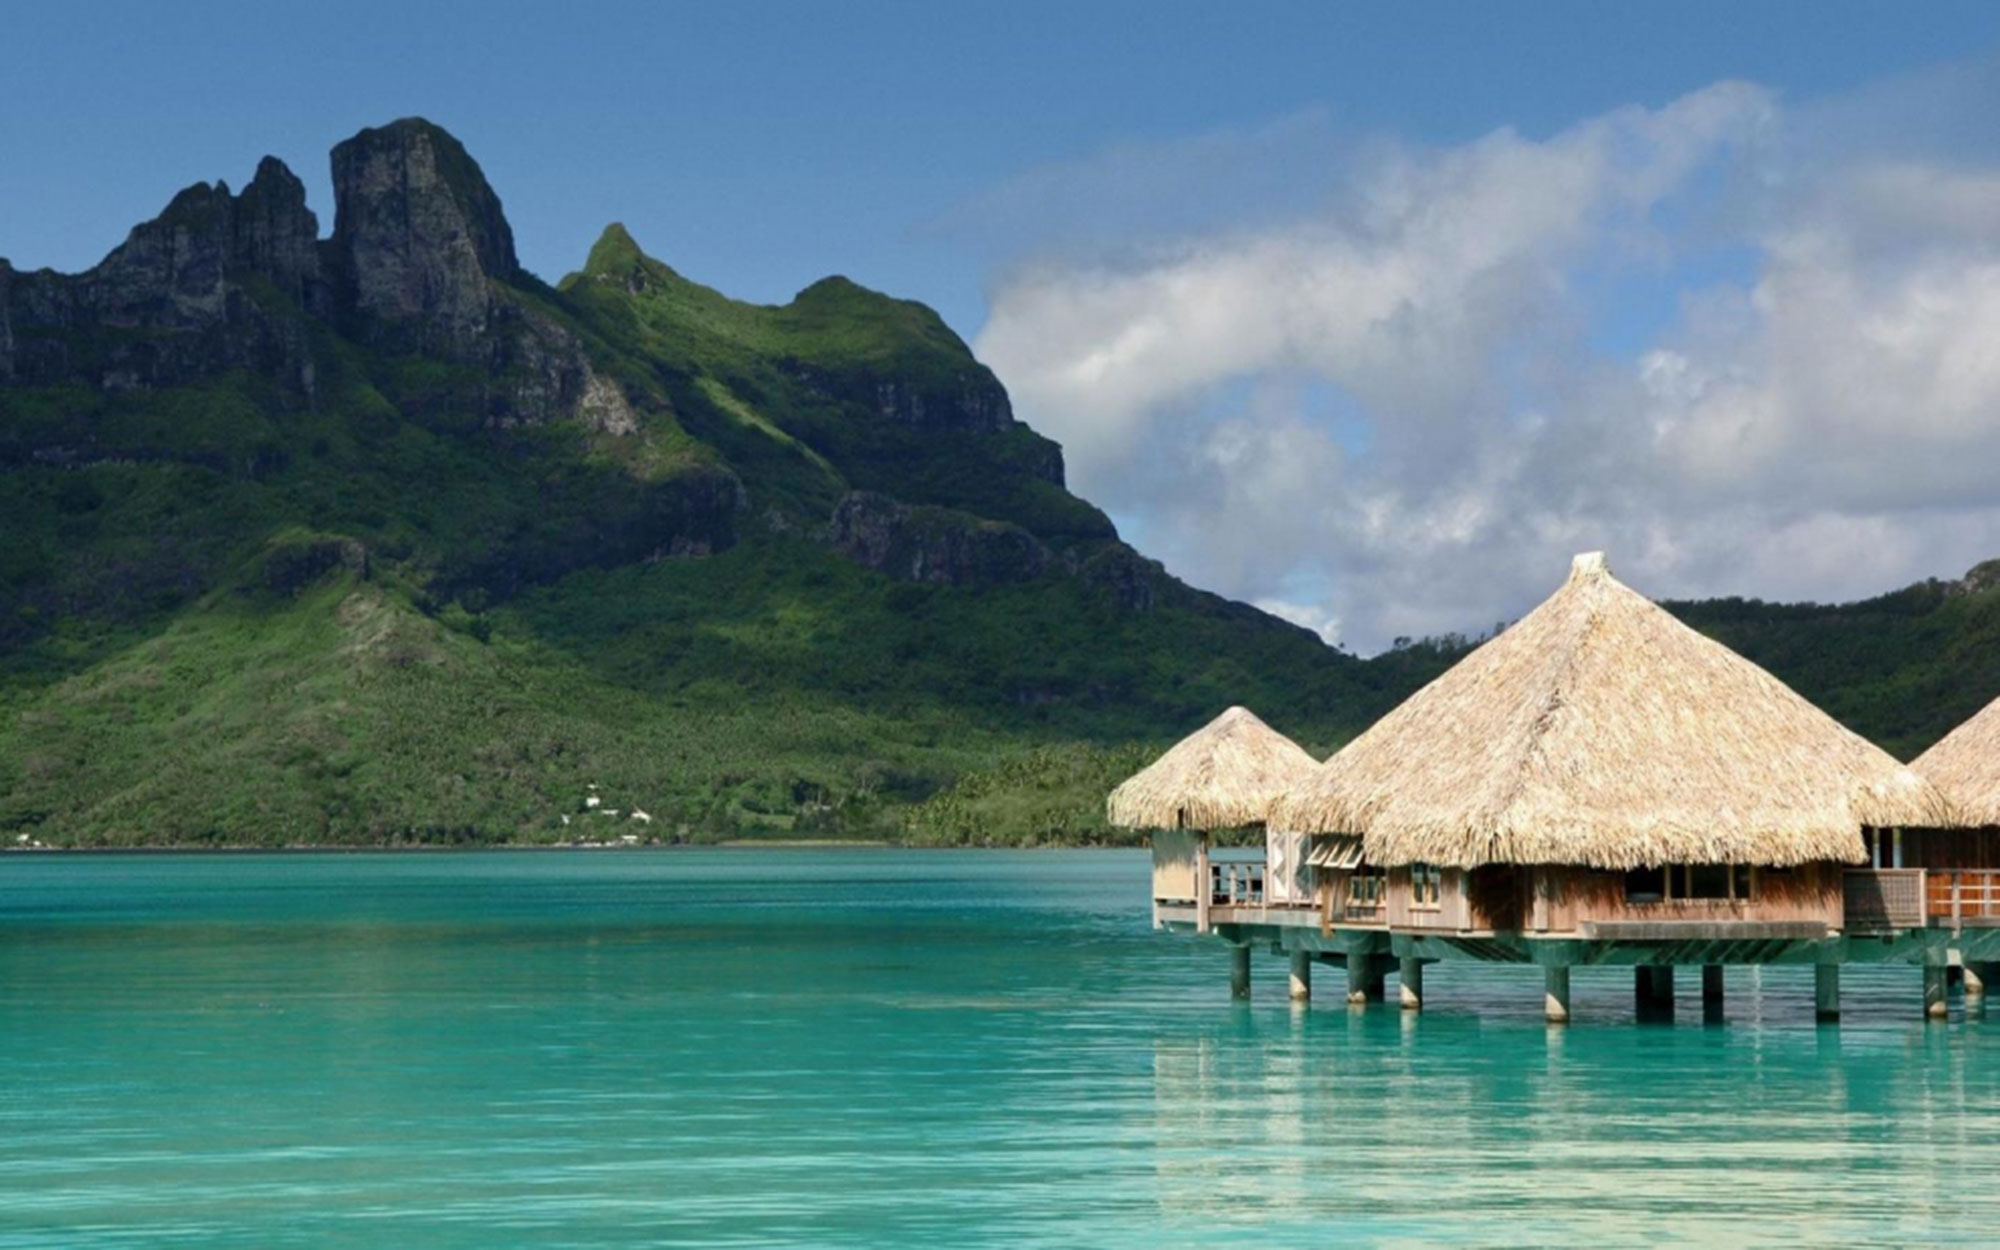 No. 3: The St. Regis Bora Bora Resort, French Polynesia